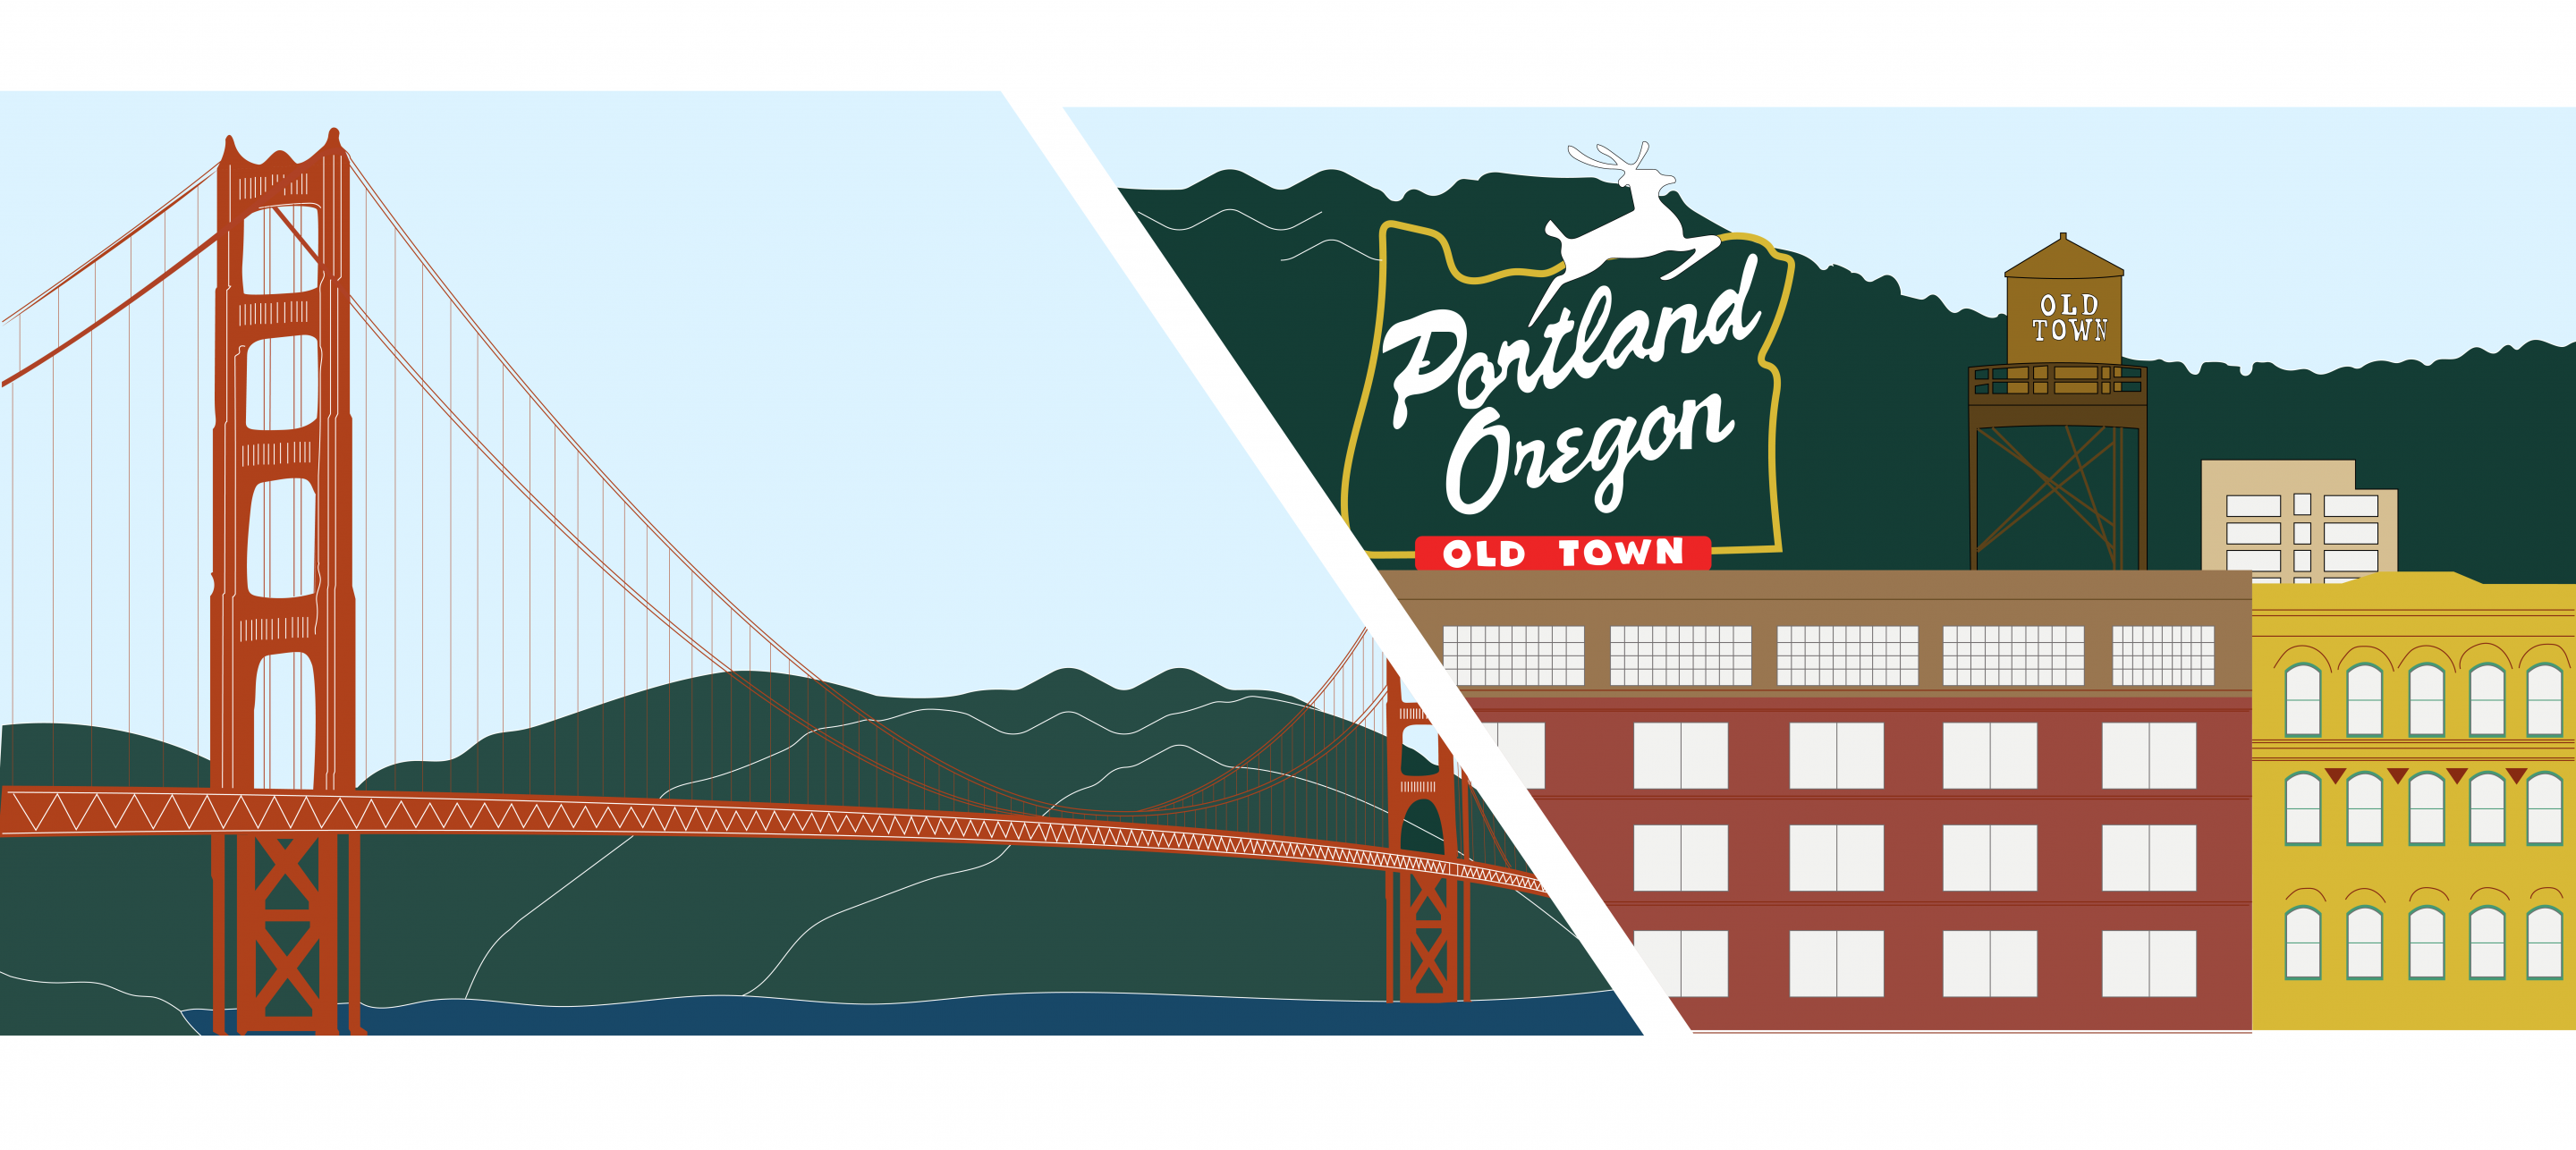 Golden Gate Bridge and Old Town Portland